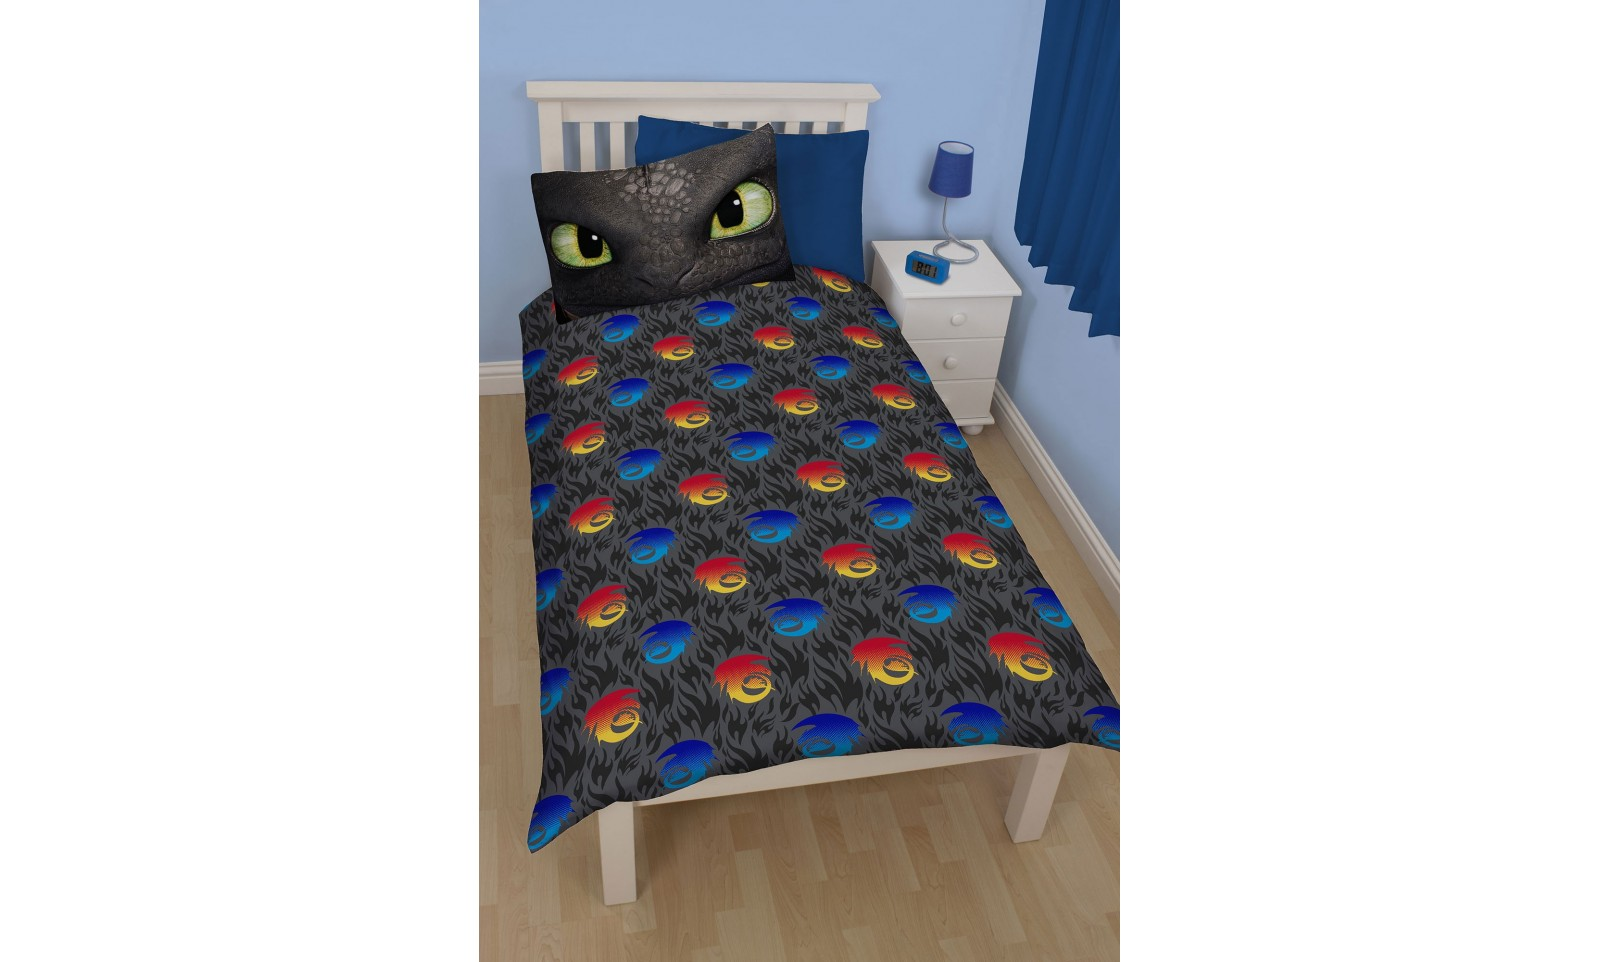 How to train your dragon toothless reversible duvet set pillow how to train your dragon toothless reversible duvet set pillow case duvet cover ccuart Image collections